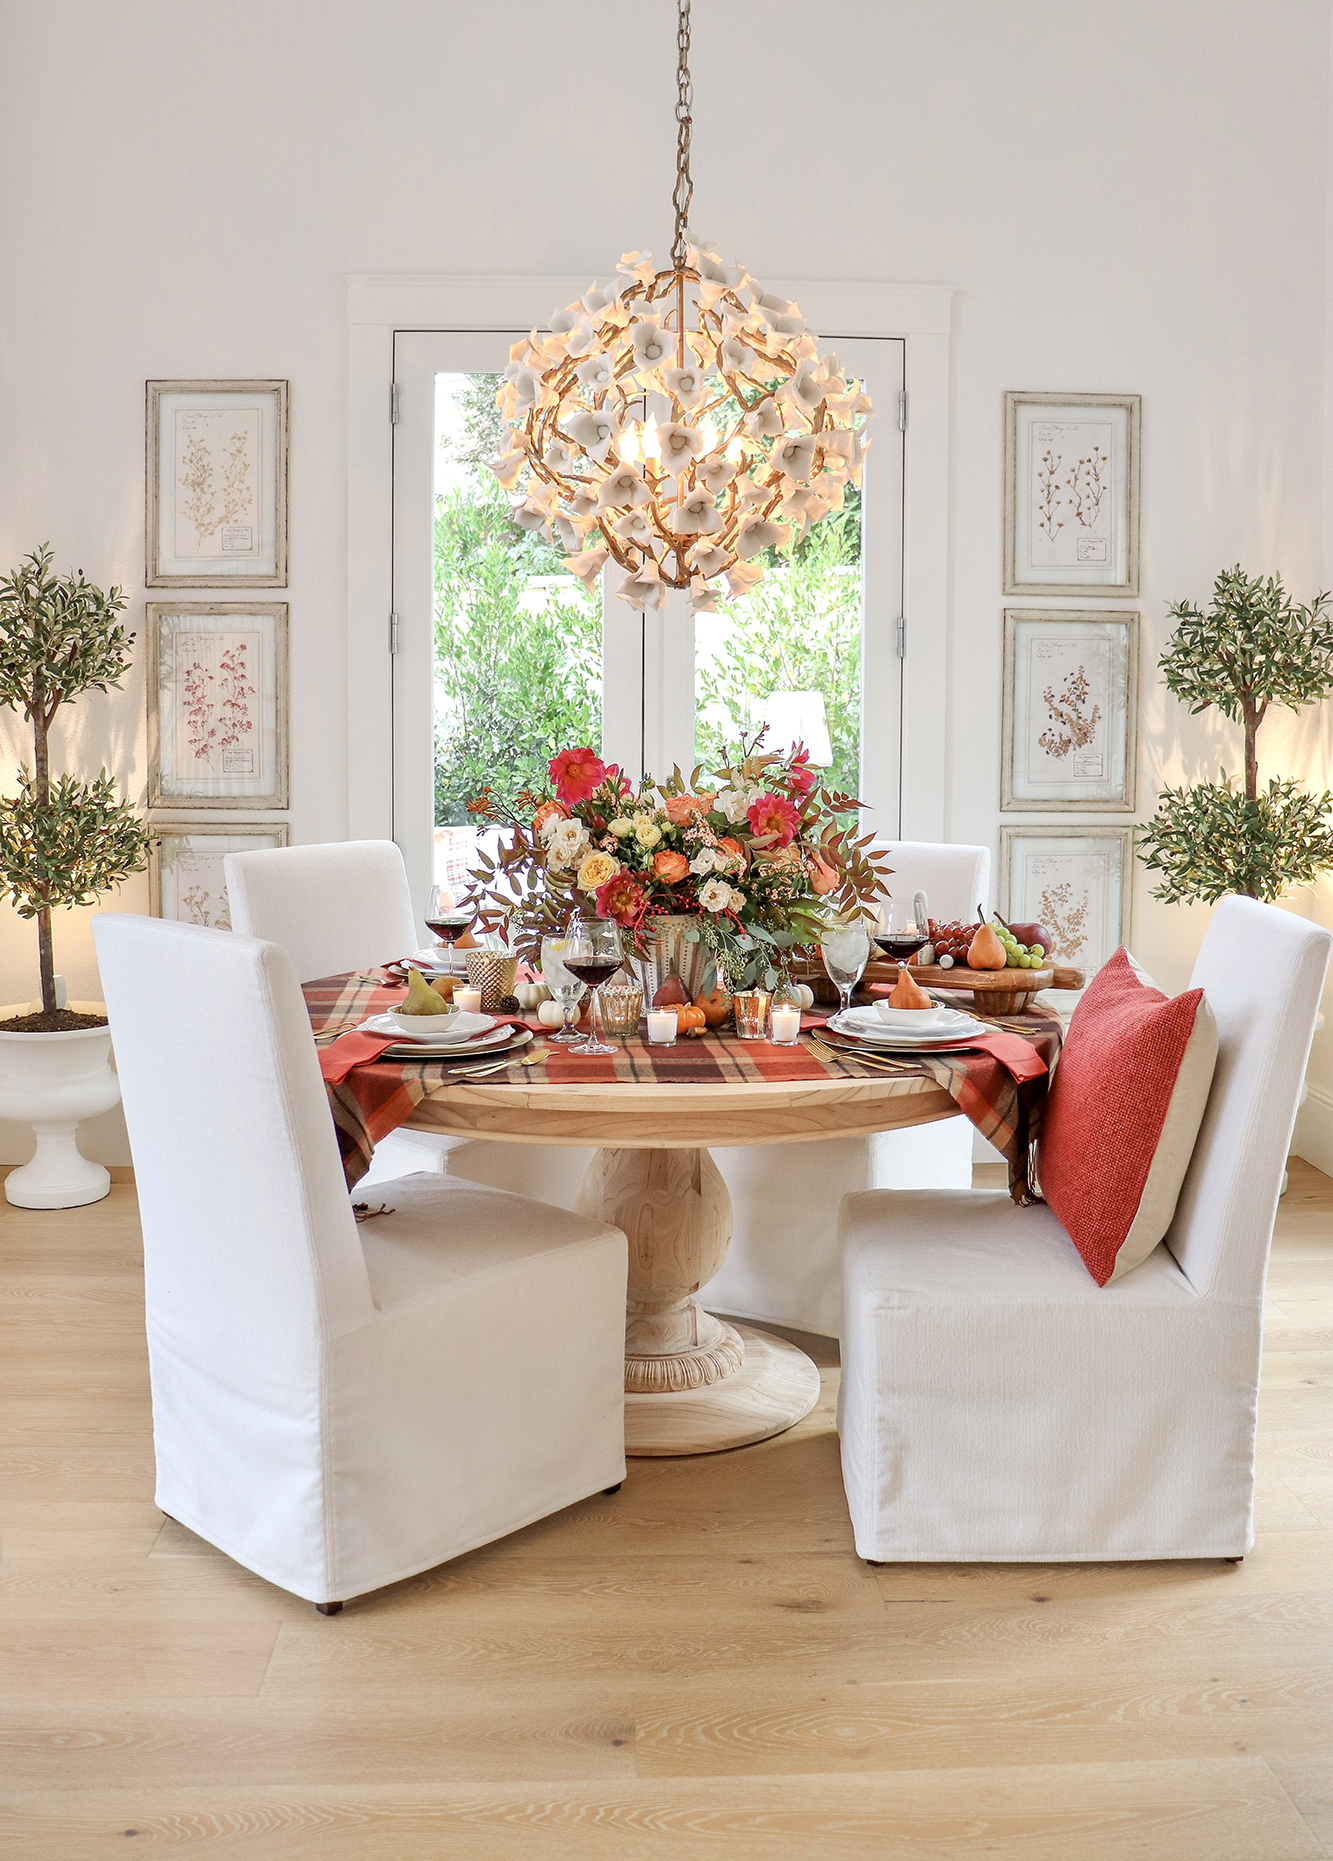 Harvest Fall Tablescape Ideas - Using classic dinnerware and adding autumnal touches to create and easy and beautiful table setting.